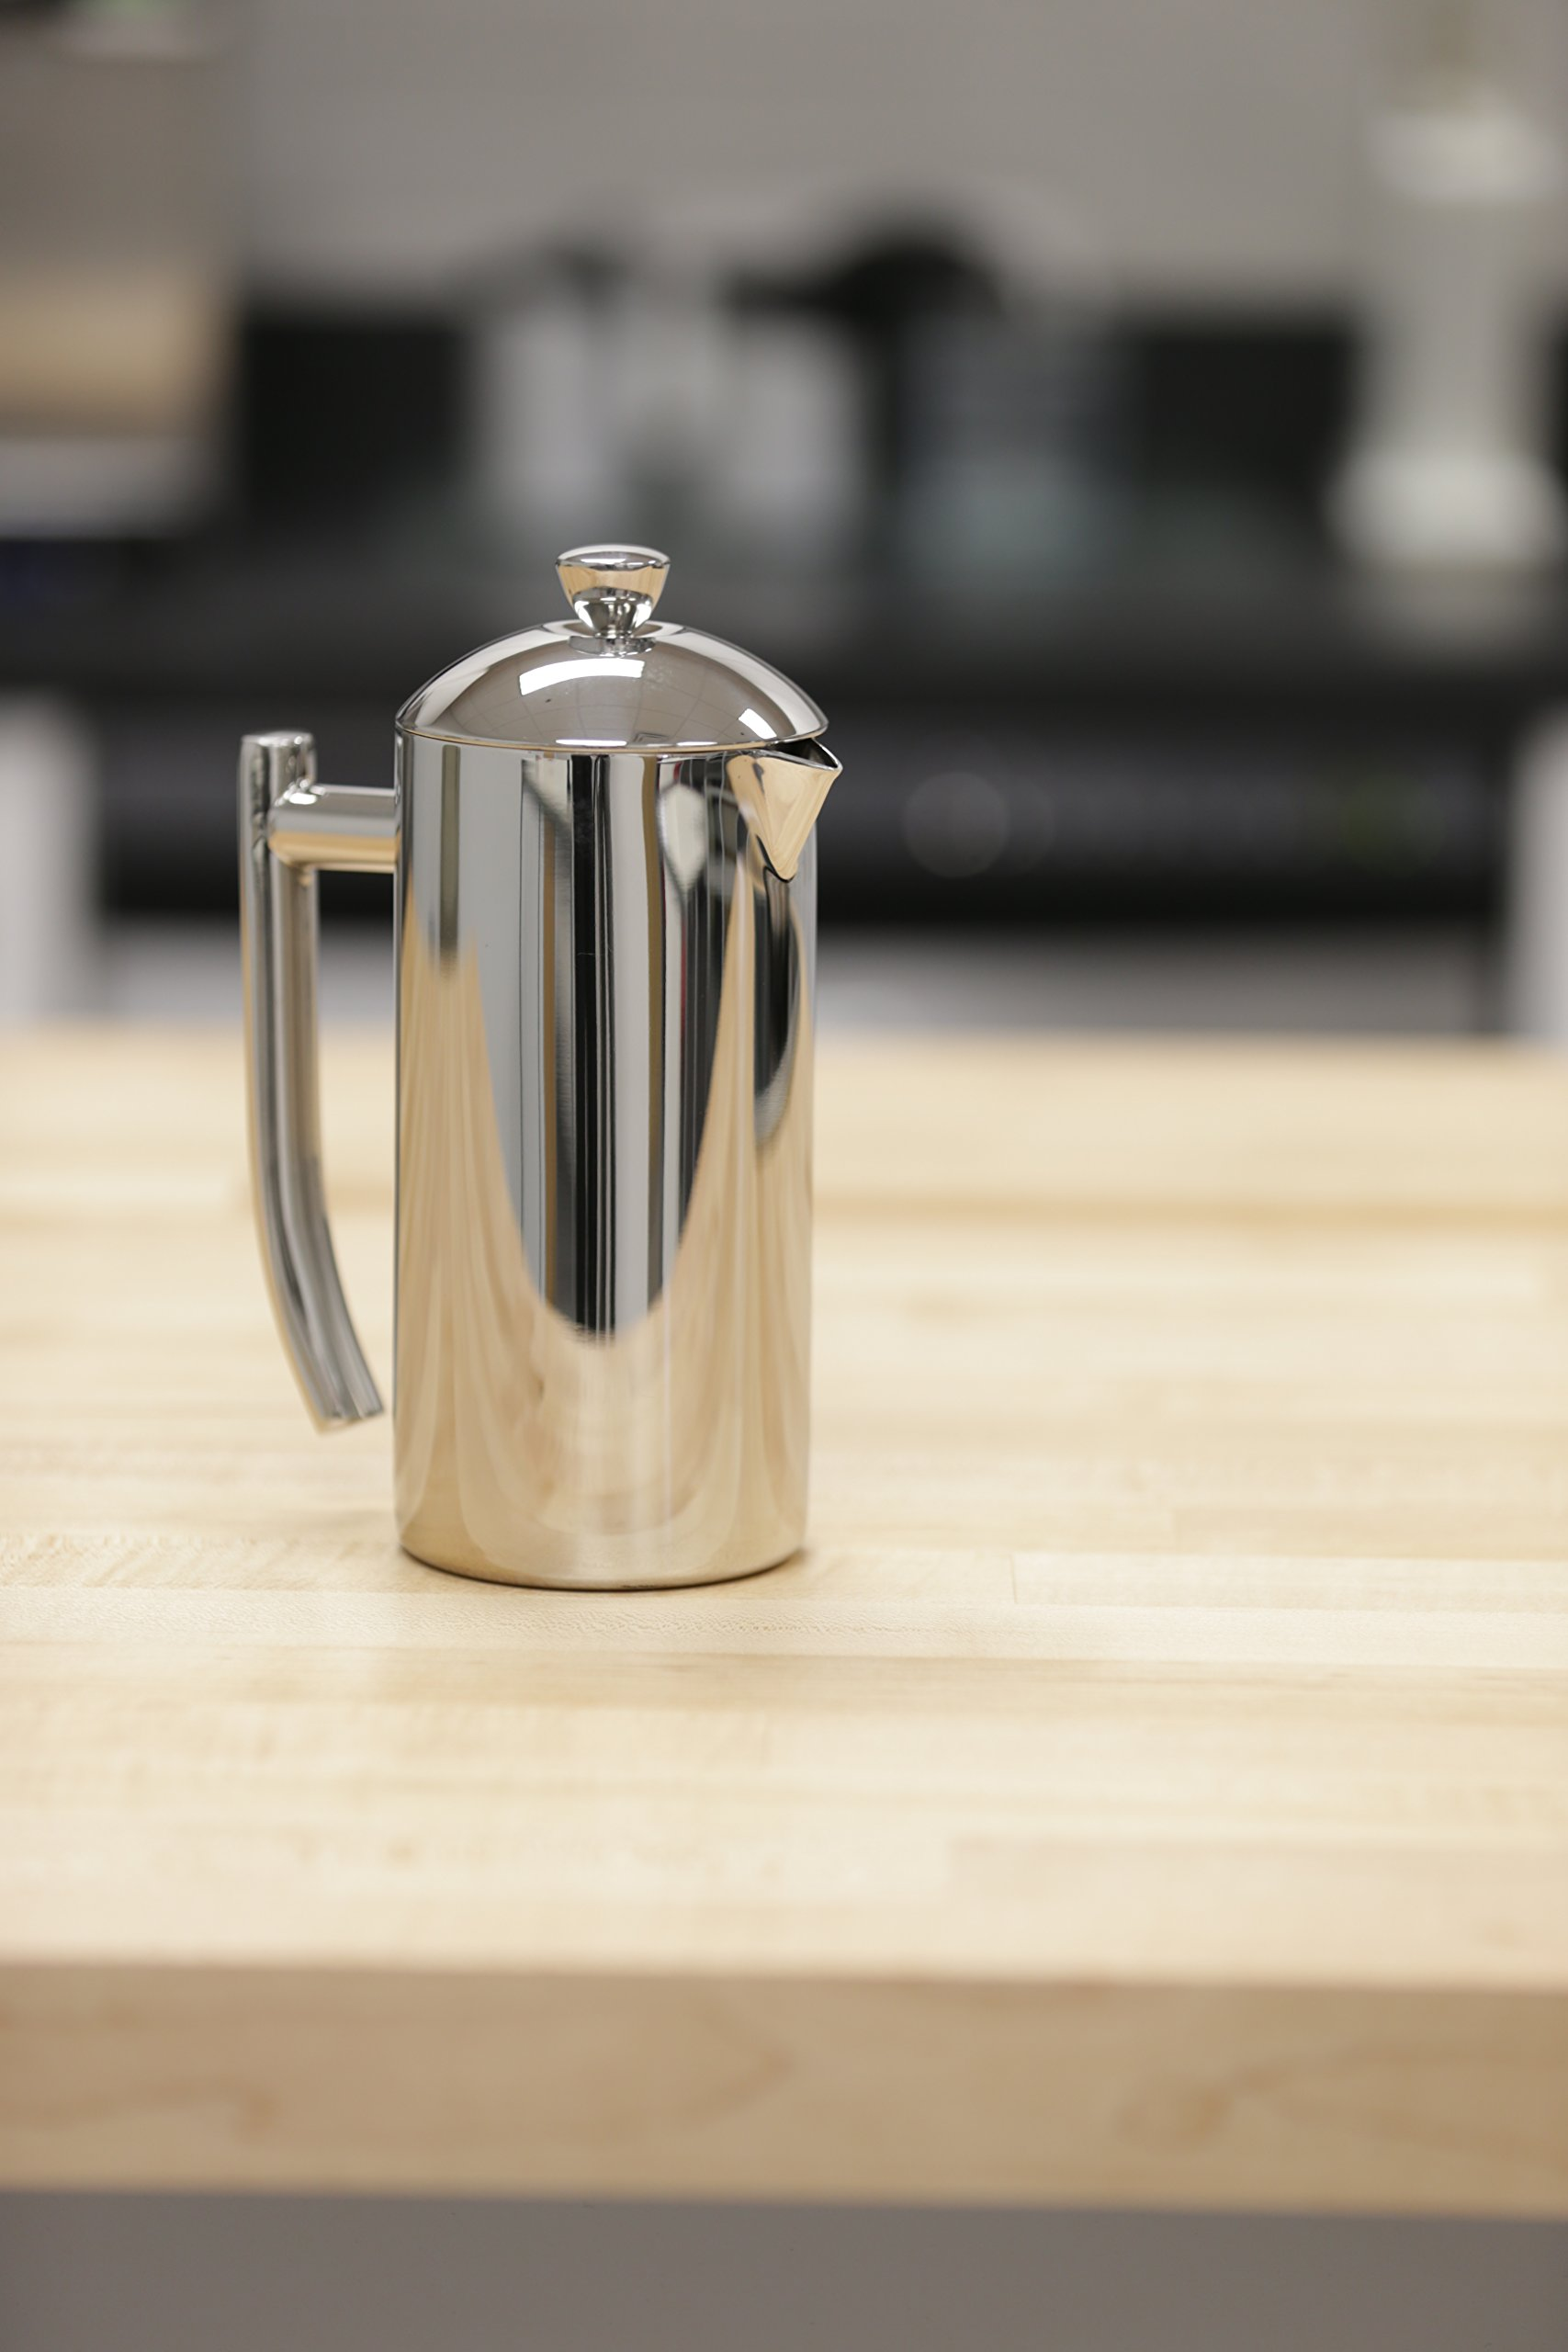 Frieling USA 131 Double Wall Stainless Steel French Press Coffee Maker with Patented Dual Screen, 44-Ounce, Brushed by Frieling (Image #3)